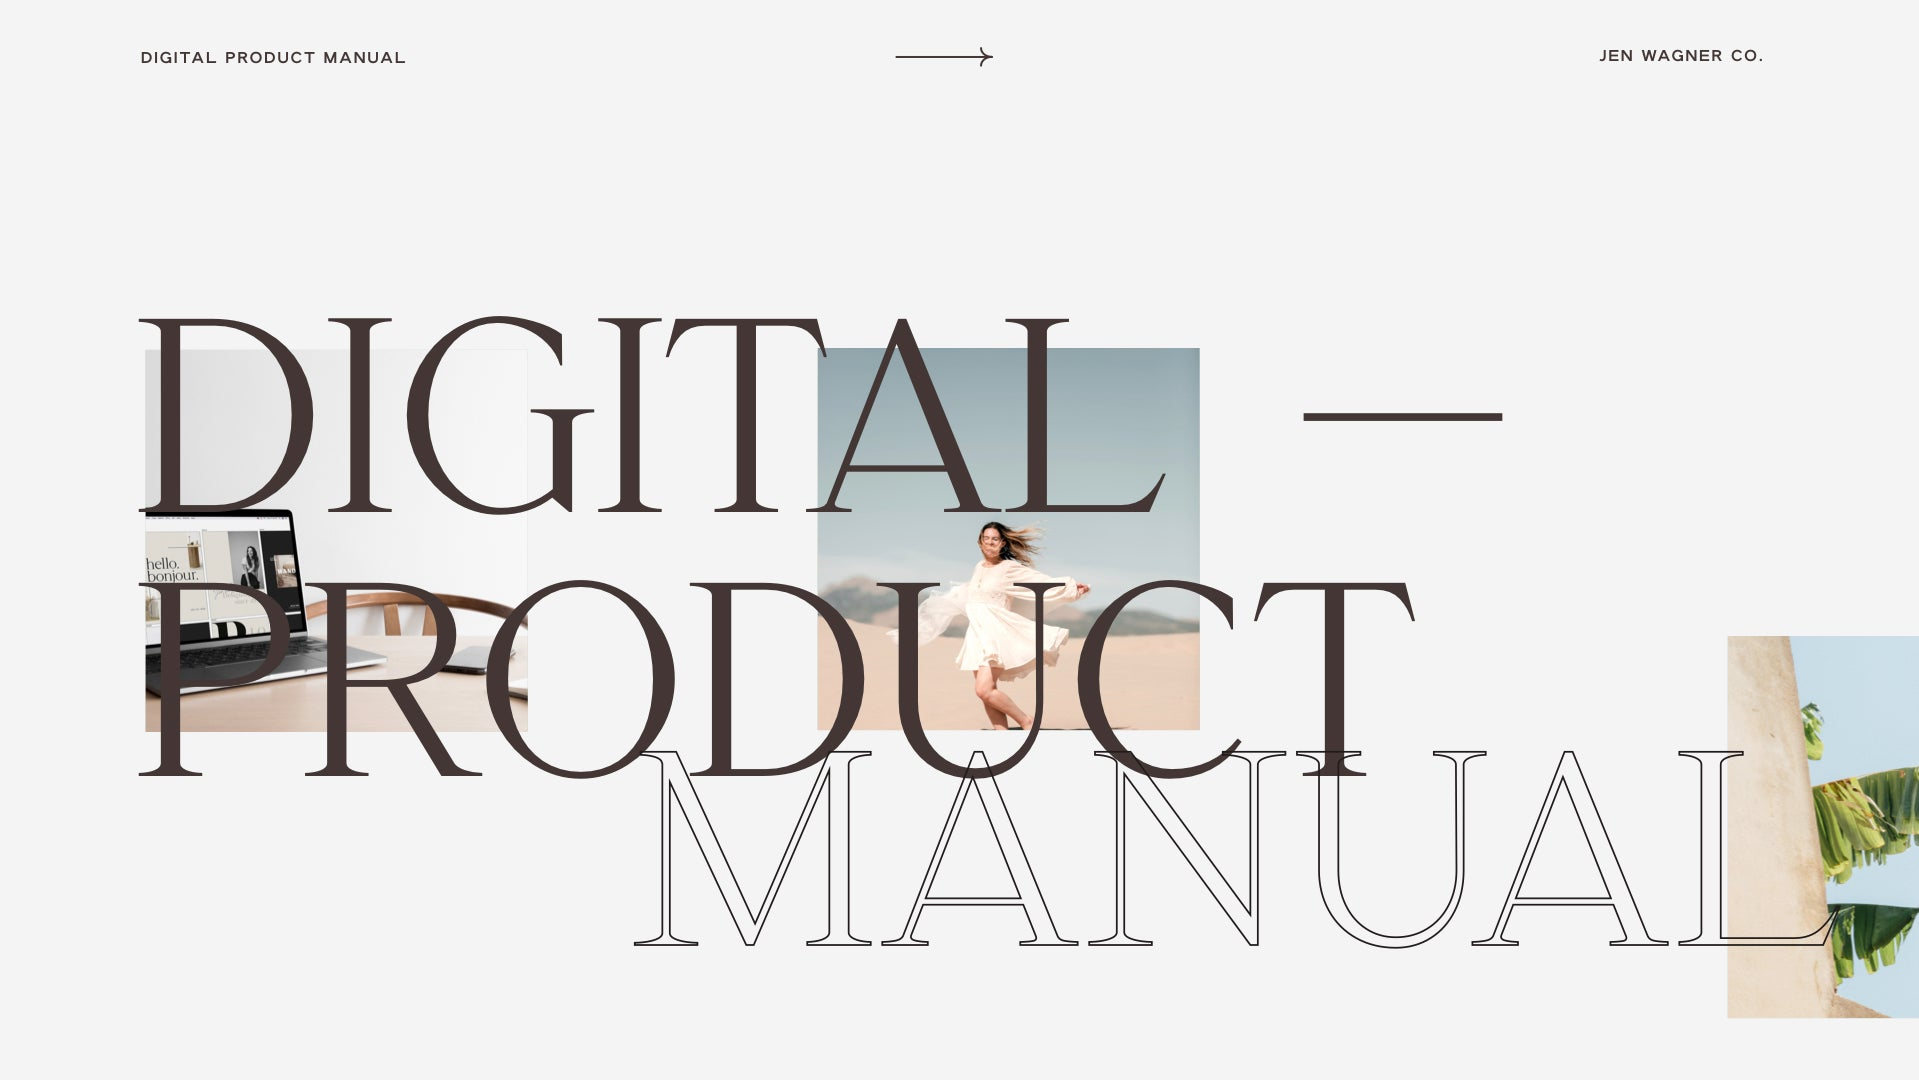 Digital Product Manual